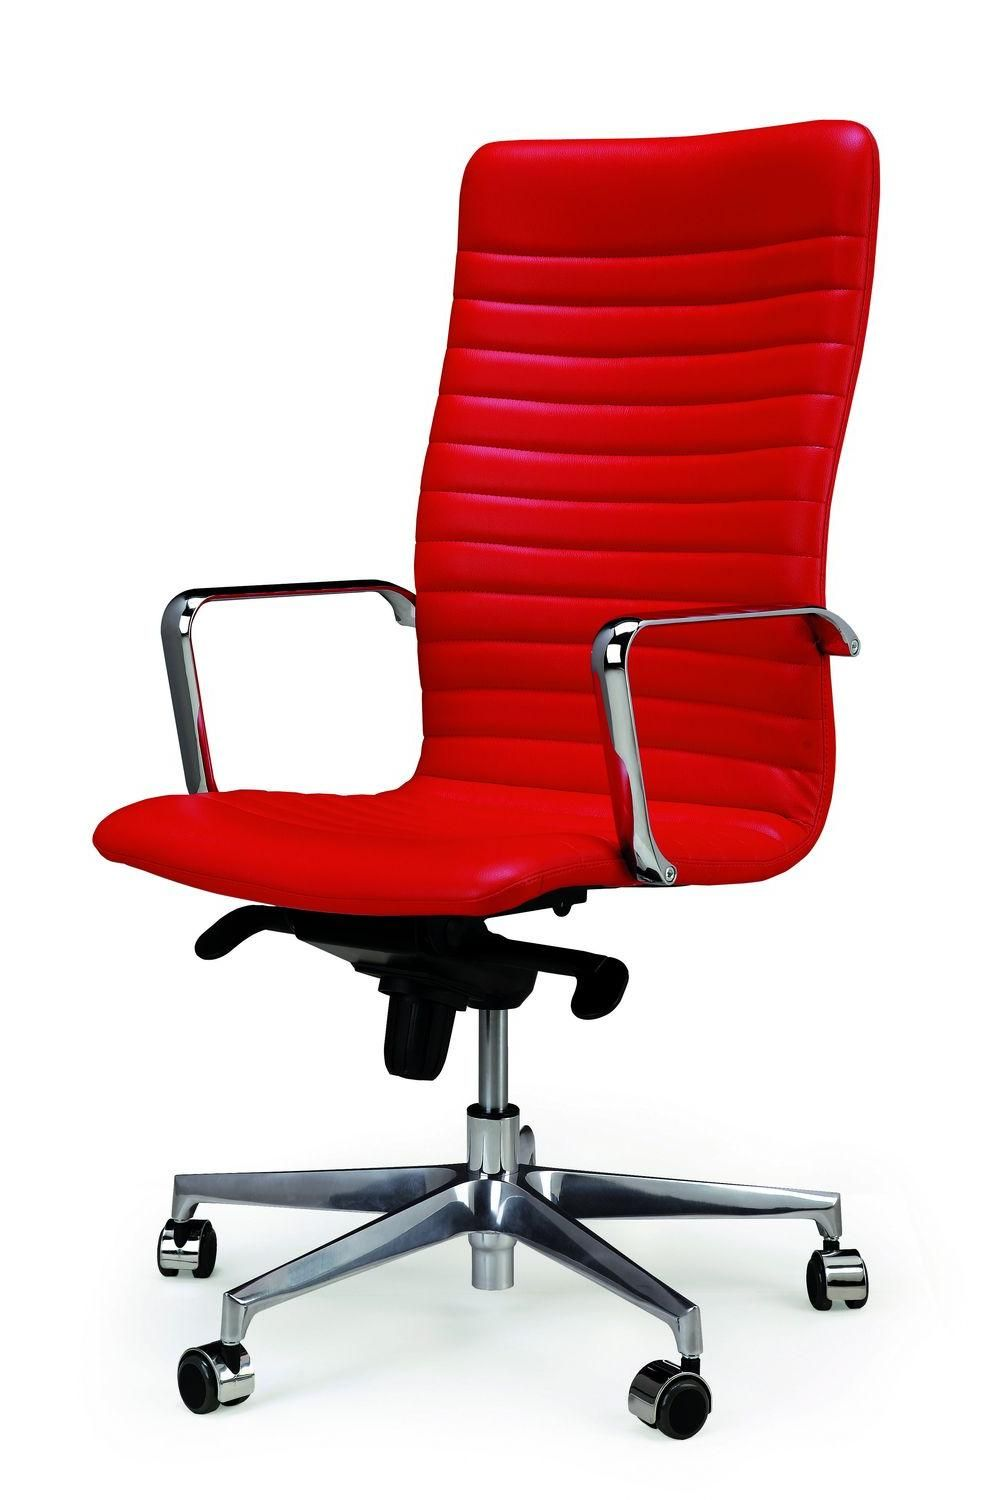 Elegance Red Leather Modern Office Chairs Decor For Comfortable Working Fantastic Modern Office Chairs Decor Modern Office Chair Chair Decorations Office Chair